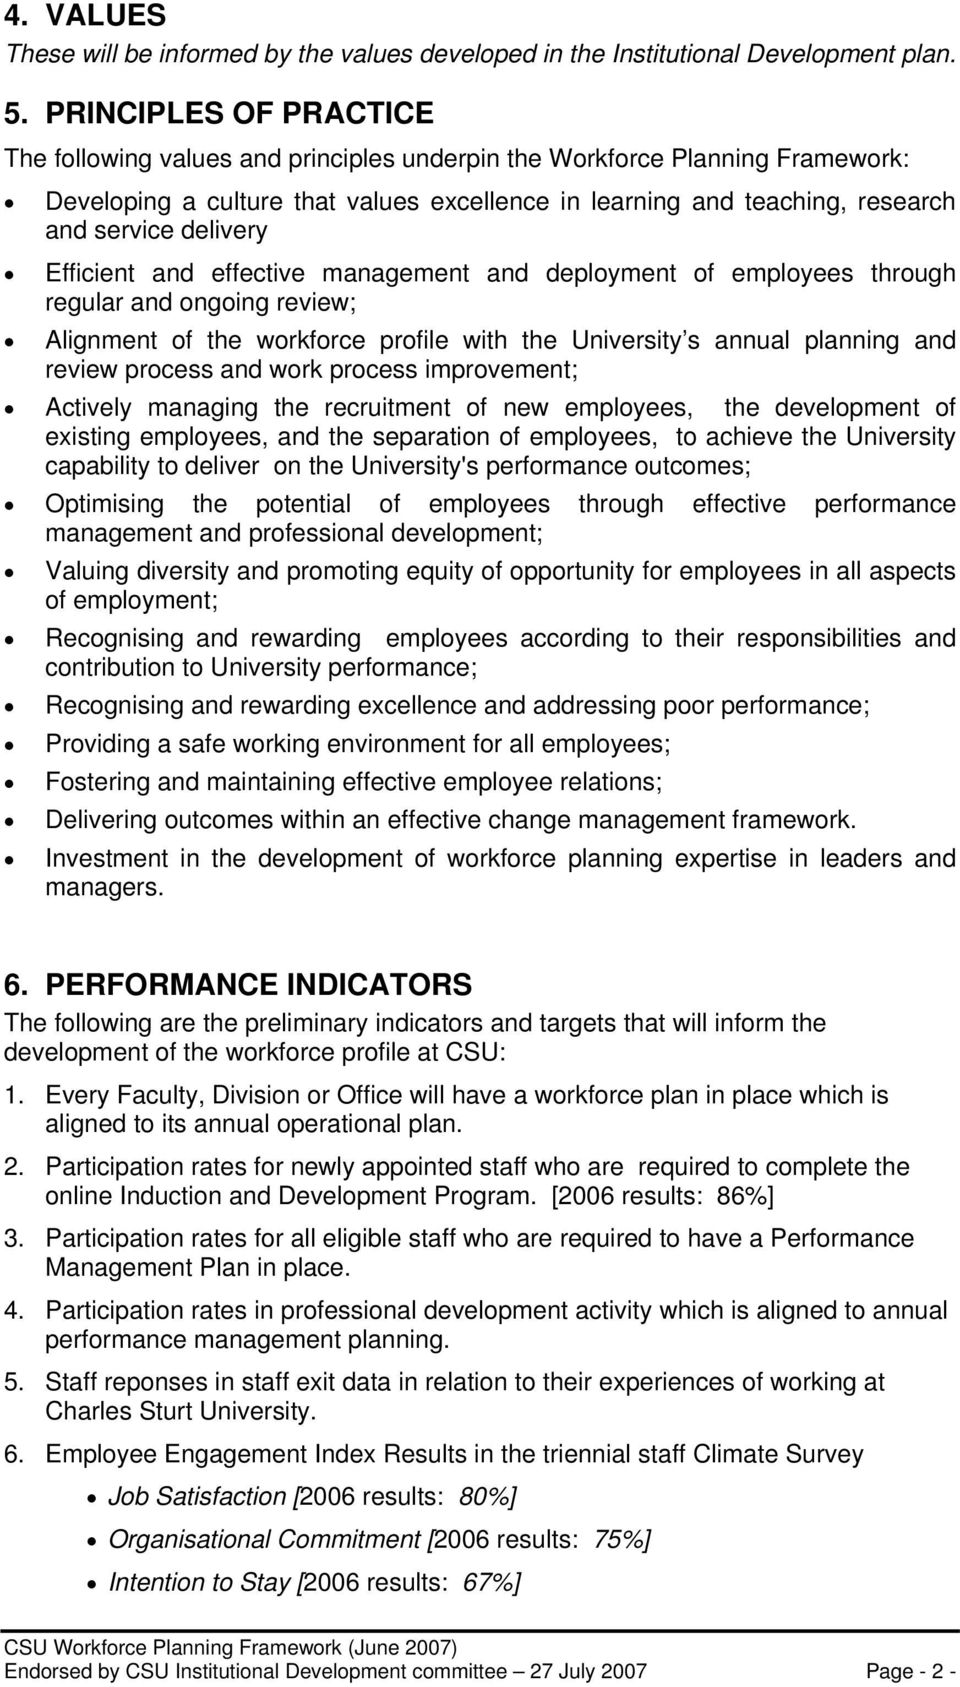 delivery Efficient and effective management and deployment of employees through regular and ongoing review; Alignment of the workforce profile with the University s annual planning and review process